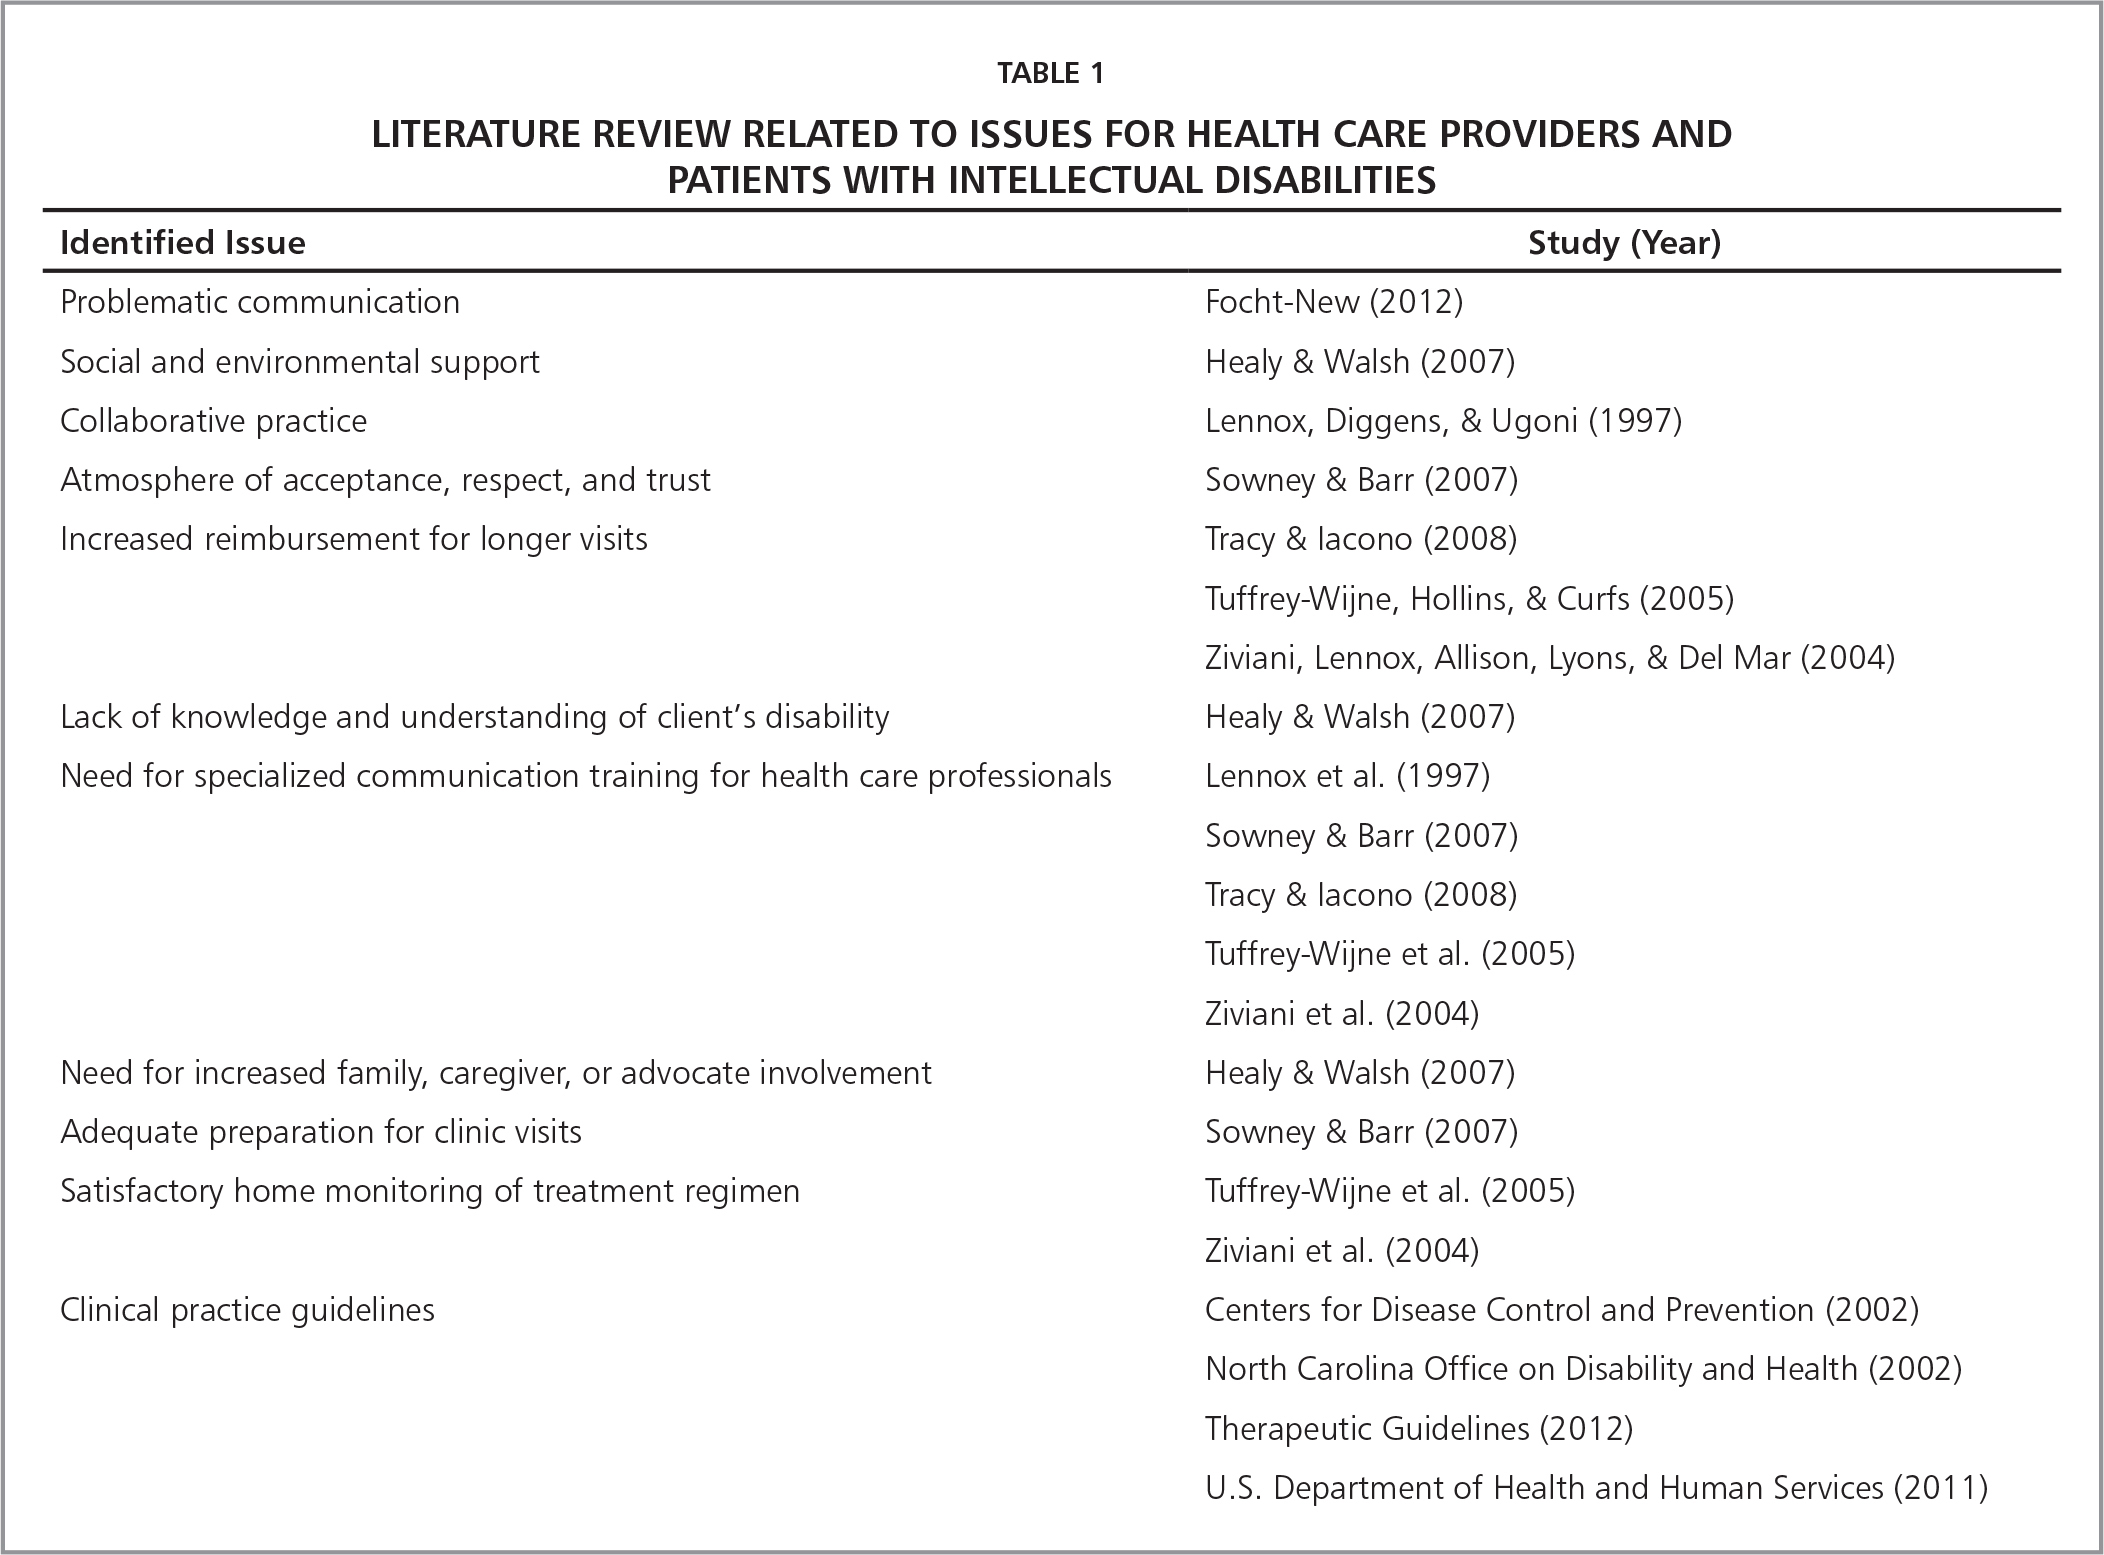 Literature Review Related to Issues for Health Care Providers and Patients with Intellectual Disabilities